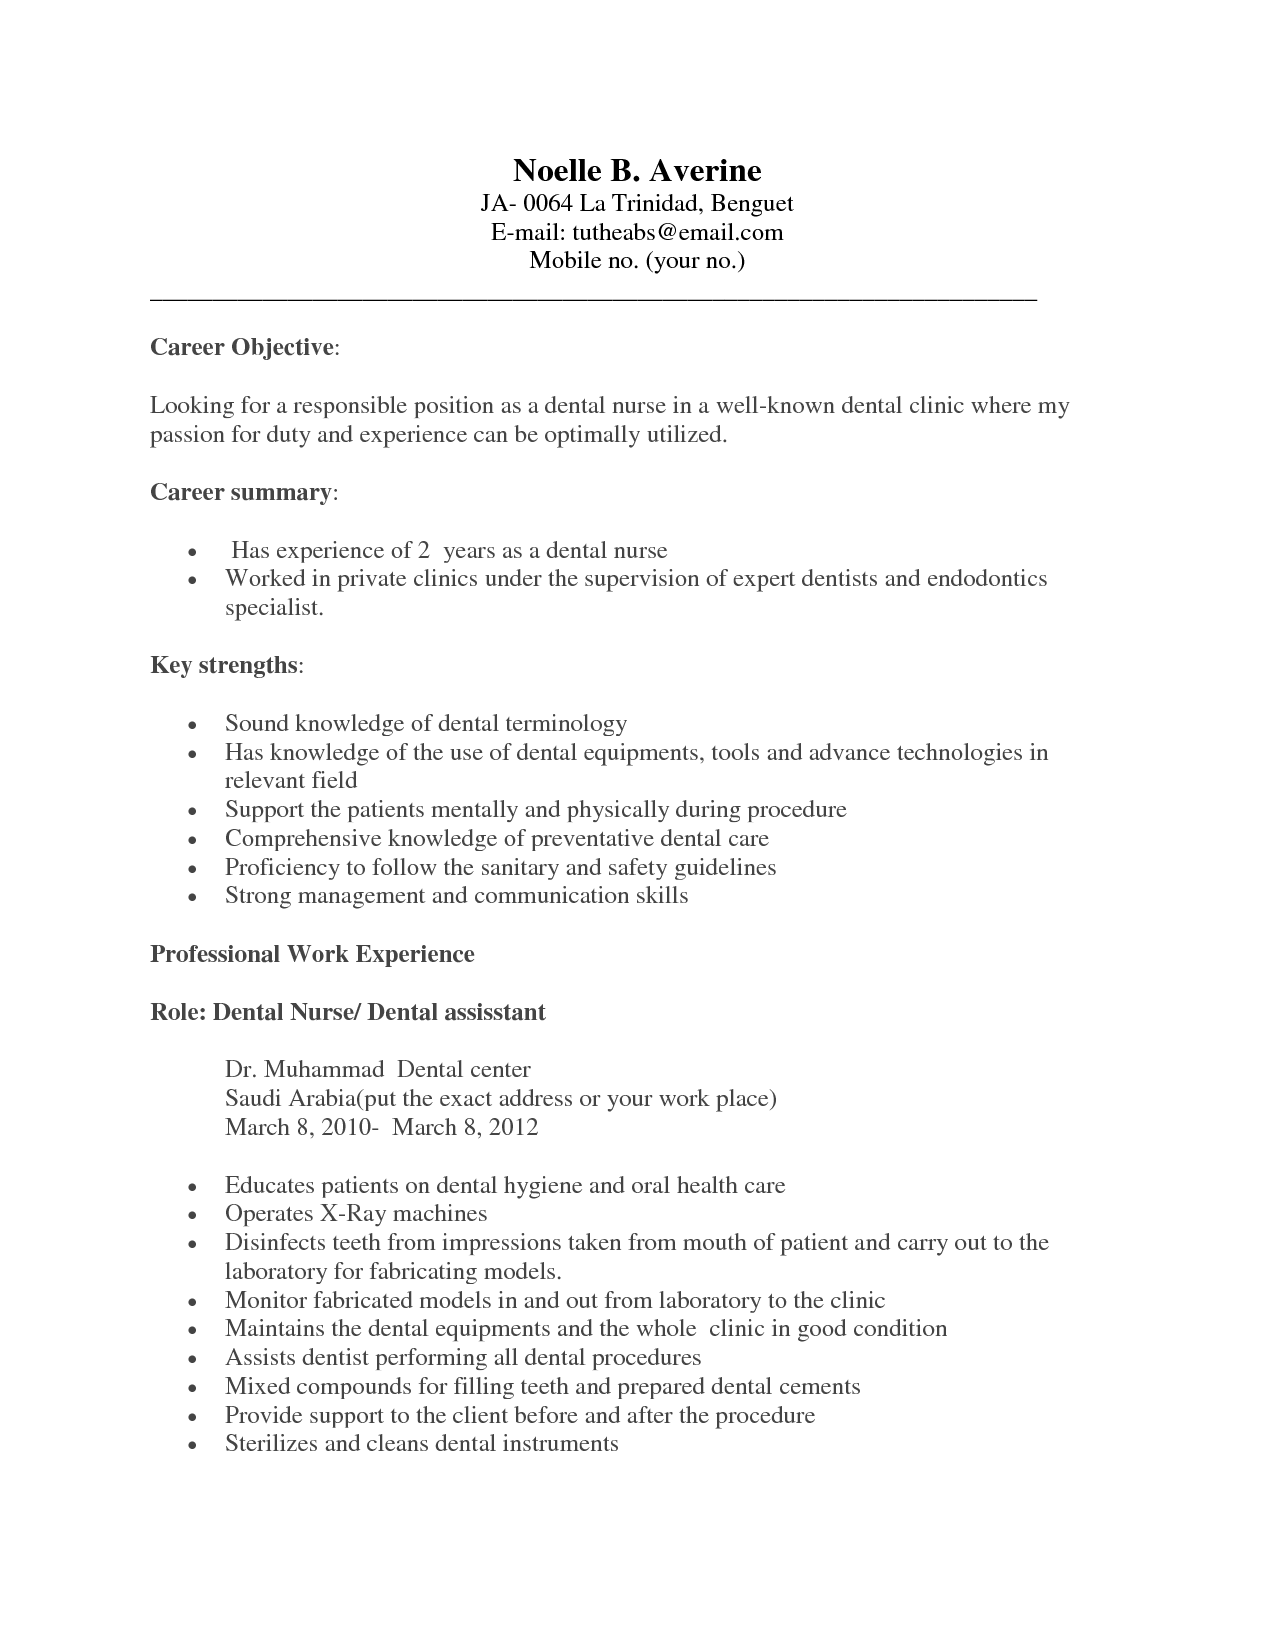 medical assistant student resume medical office assistant resume no experience - How To Write A Resume Without Work Experience 2